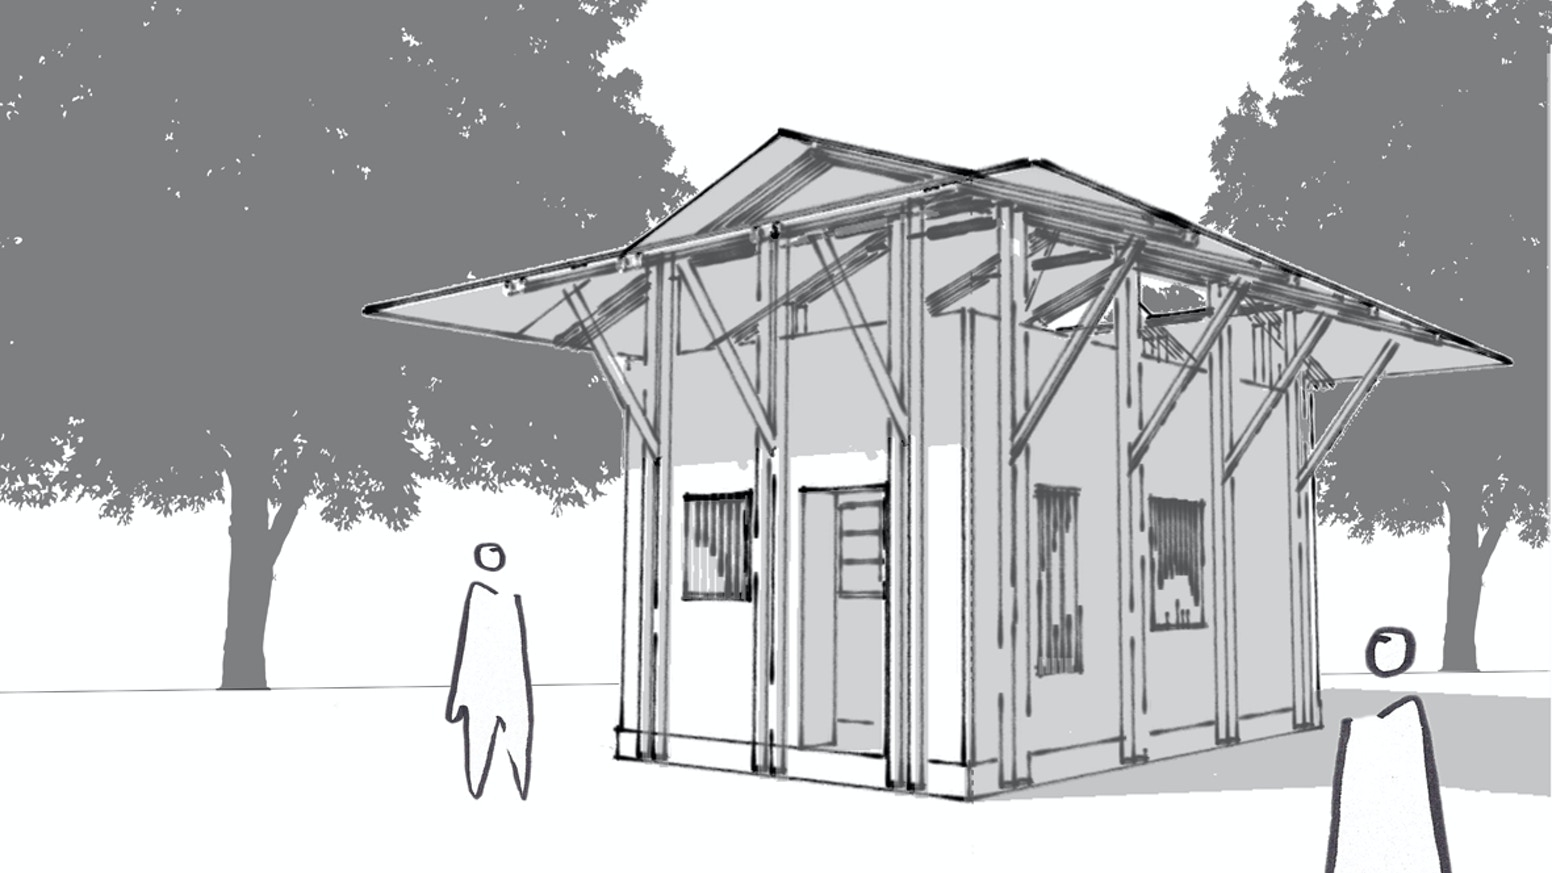 A prototype low cost eco home for slums in the nigerian capital abuja